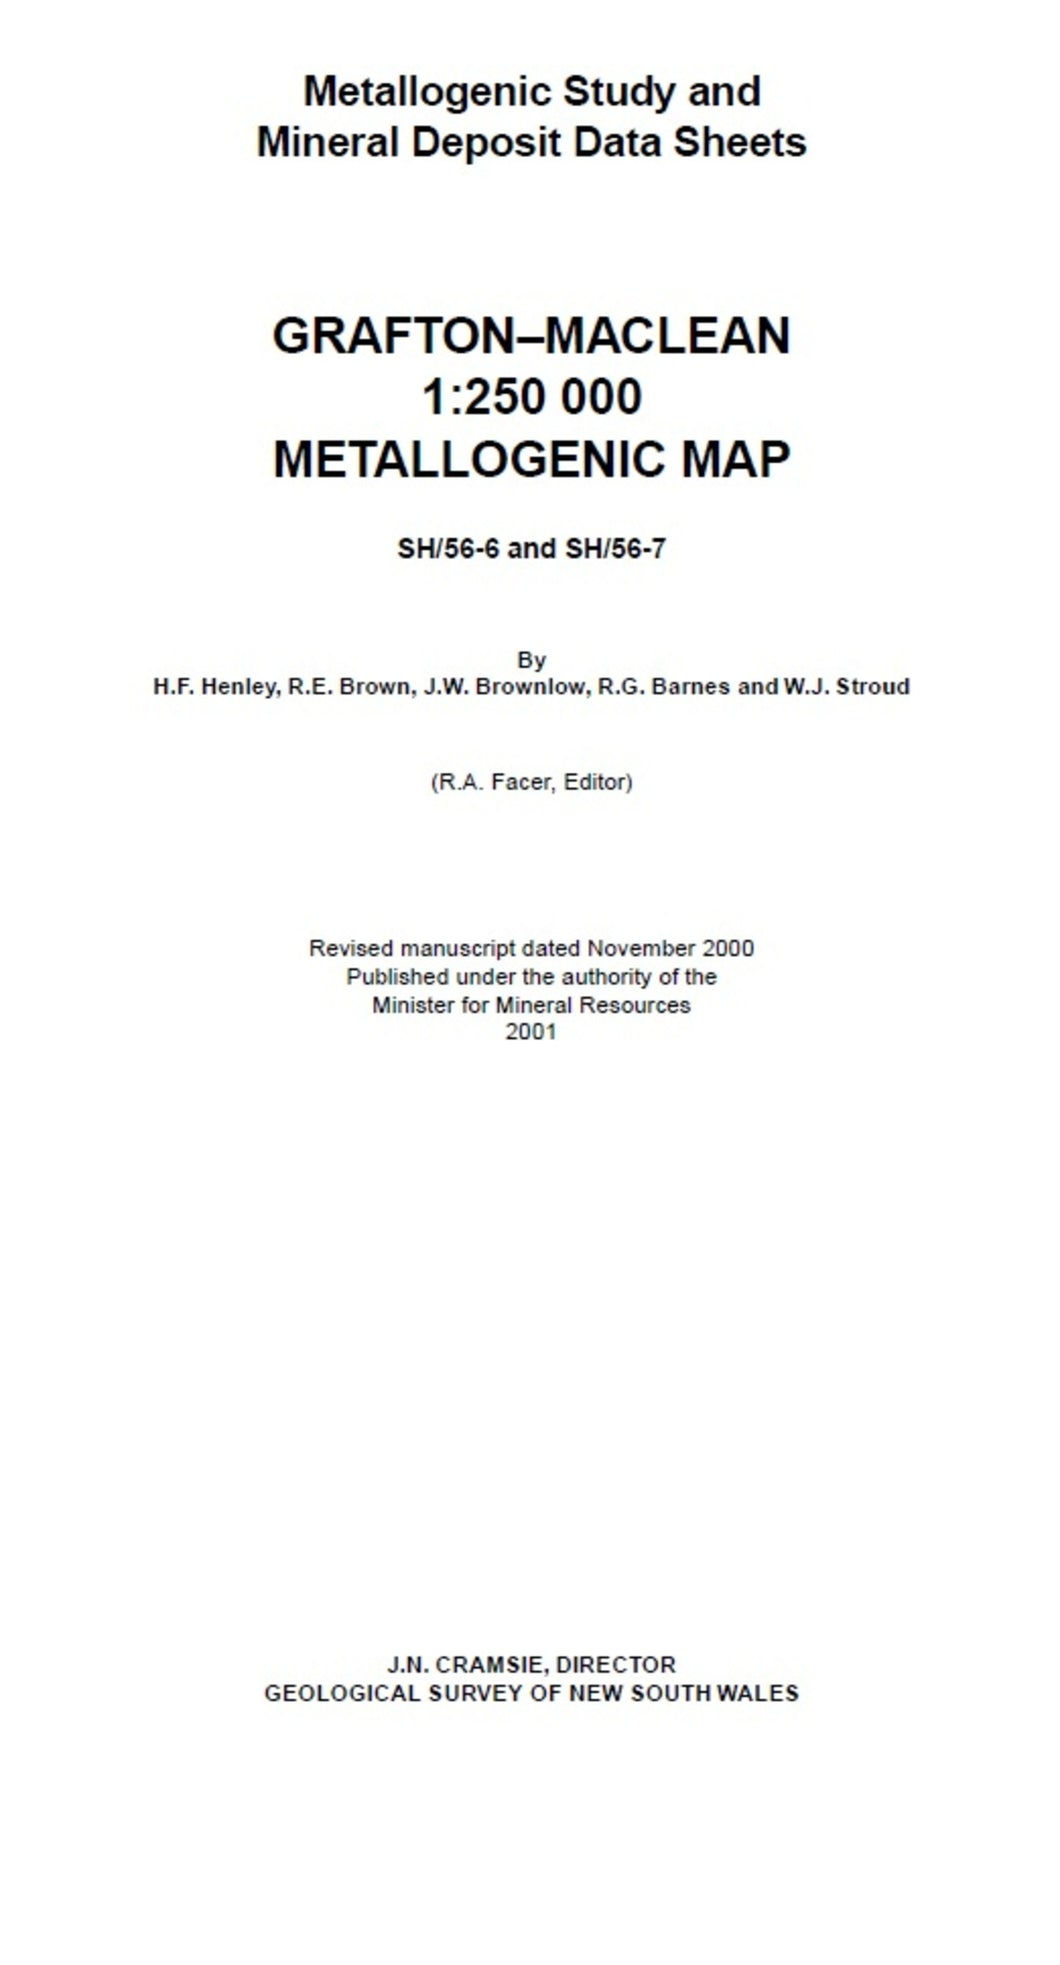 Image of Grafton Maclean Metallogenic Map Explanatory Notes 2001 book cover